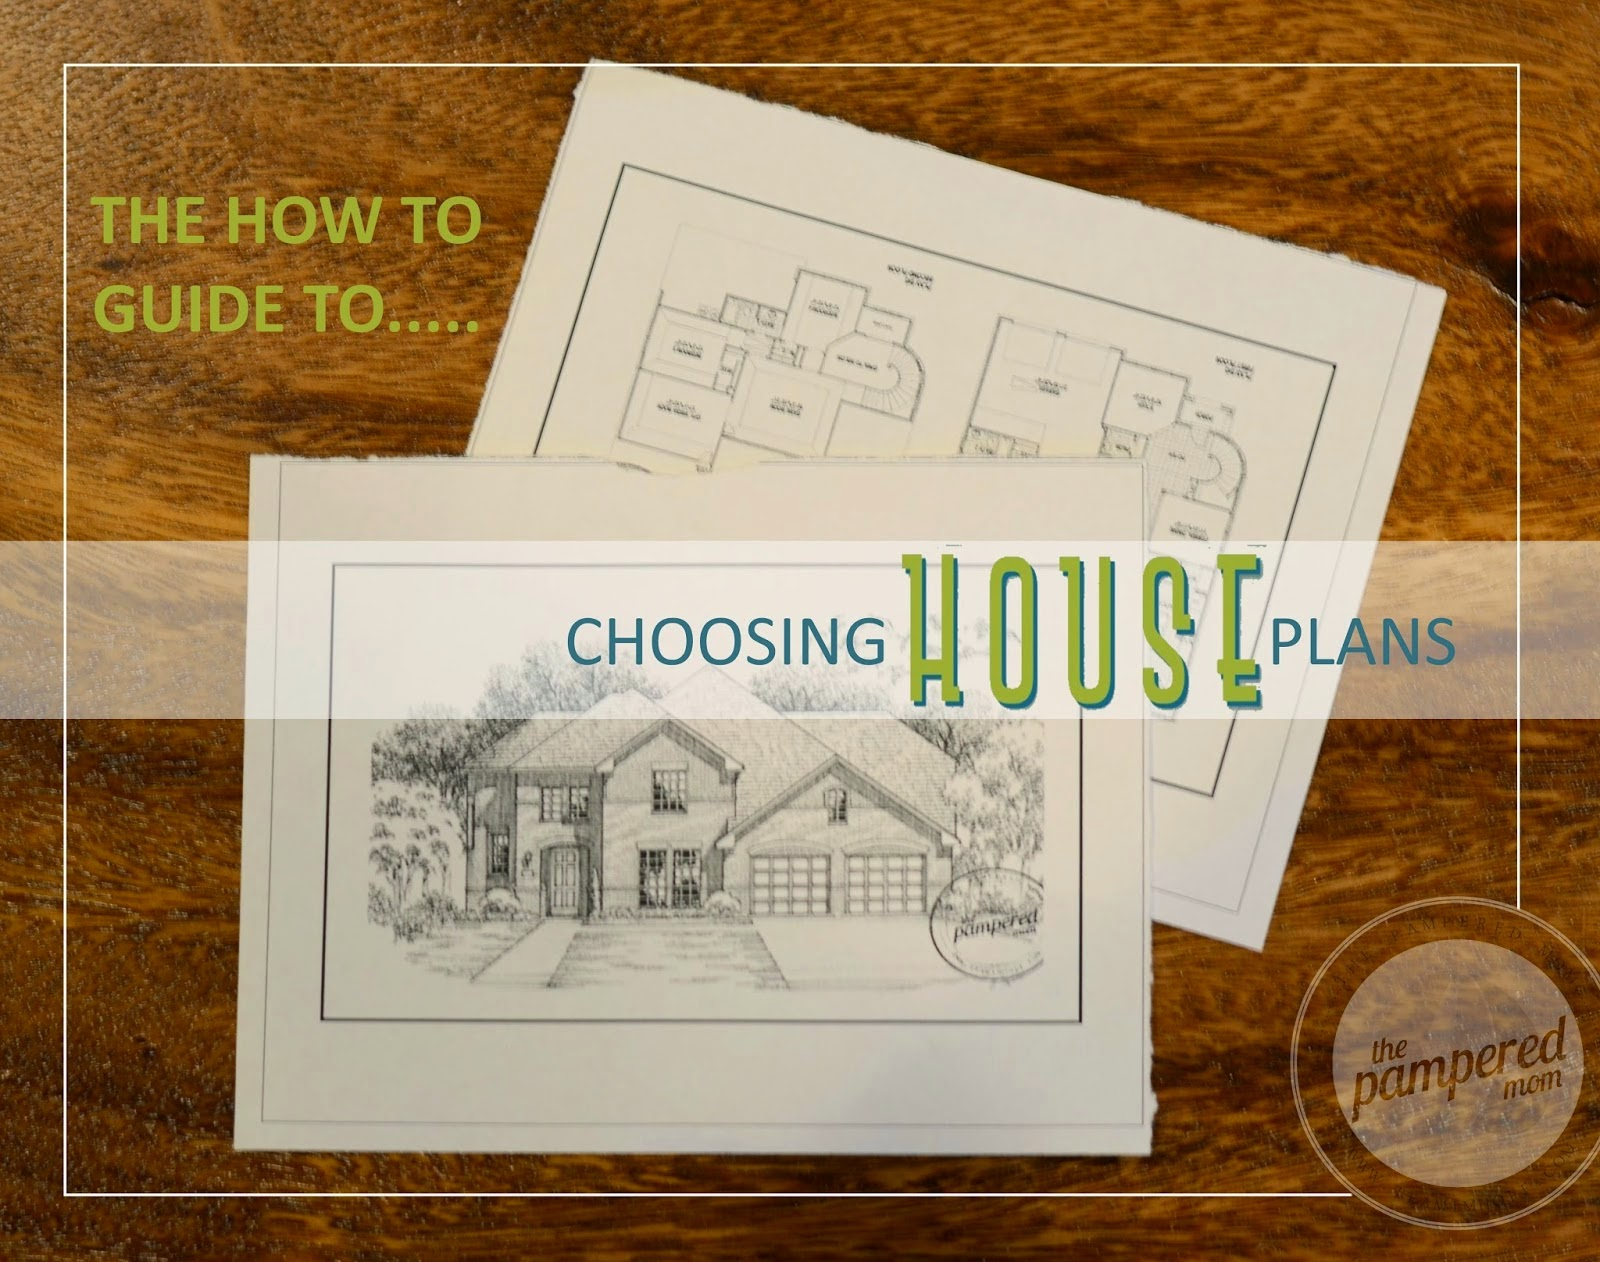 http://www.teamimhoff.com/2014/10/how-to-guide-to-choose-right-house-plan.html